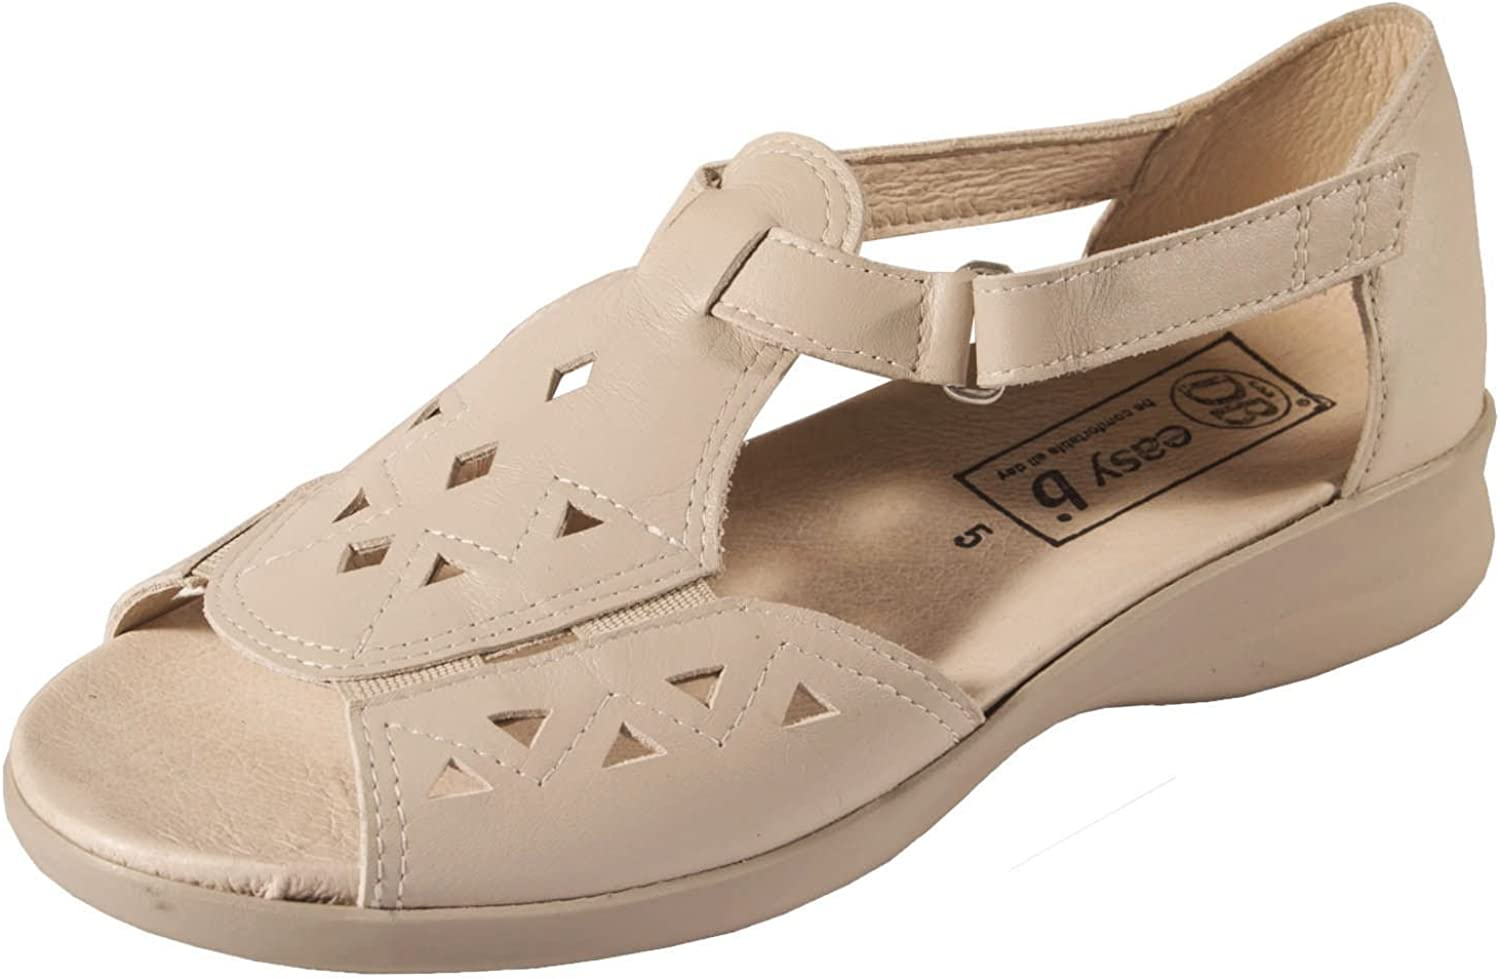 Db Shoes Kirsty Sandals for Women 4E